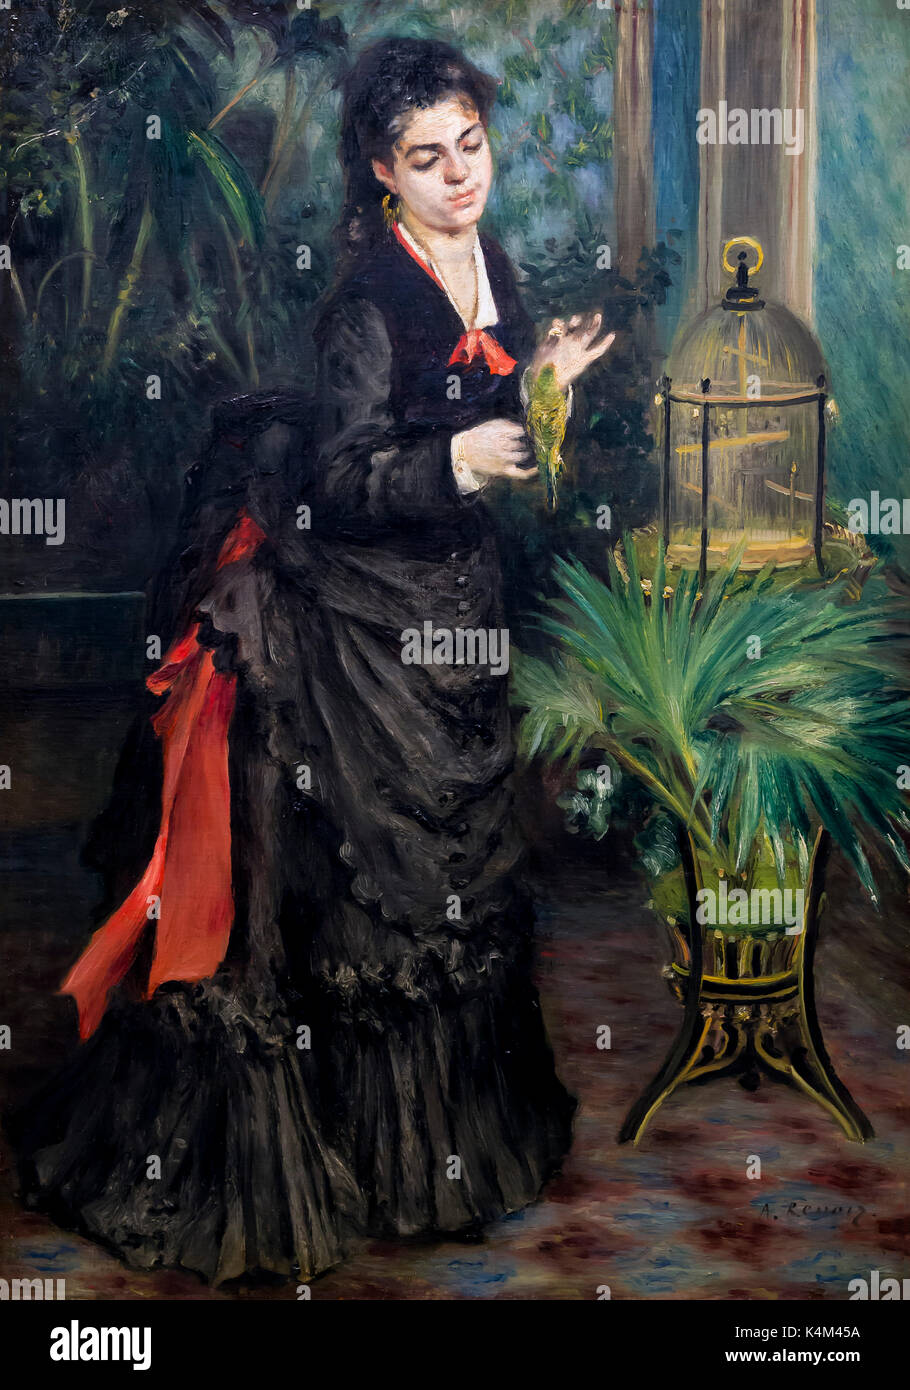 Woman with Parakeet, by Pierre-Auguste Renoir, 1871, Solomon R. Guggenheim Museum, Manhattan, New York City, USA, North America - Stock Image